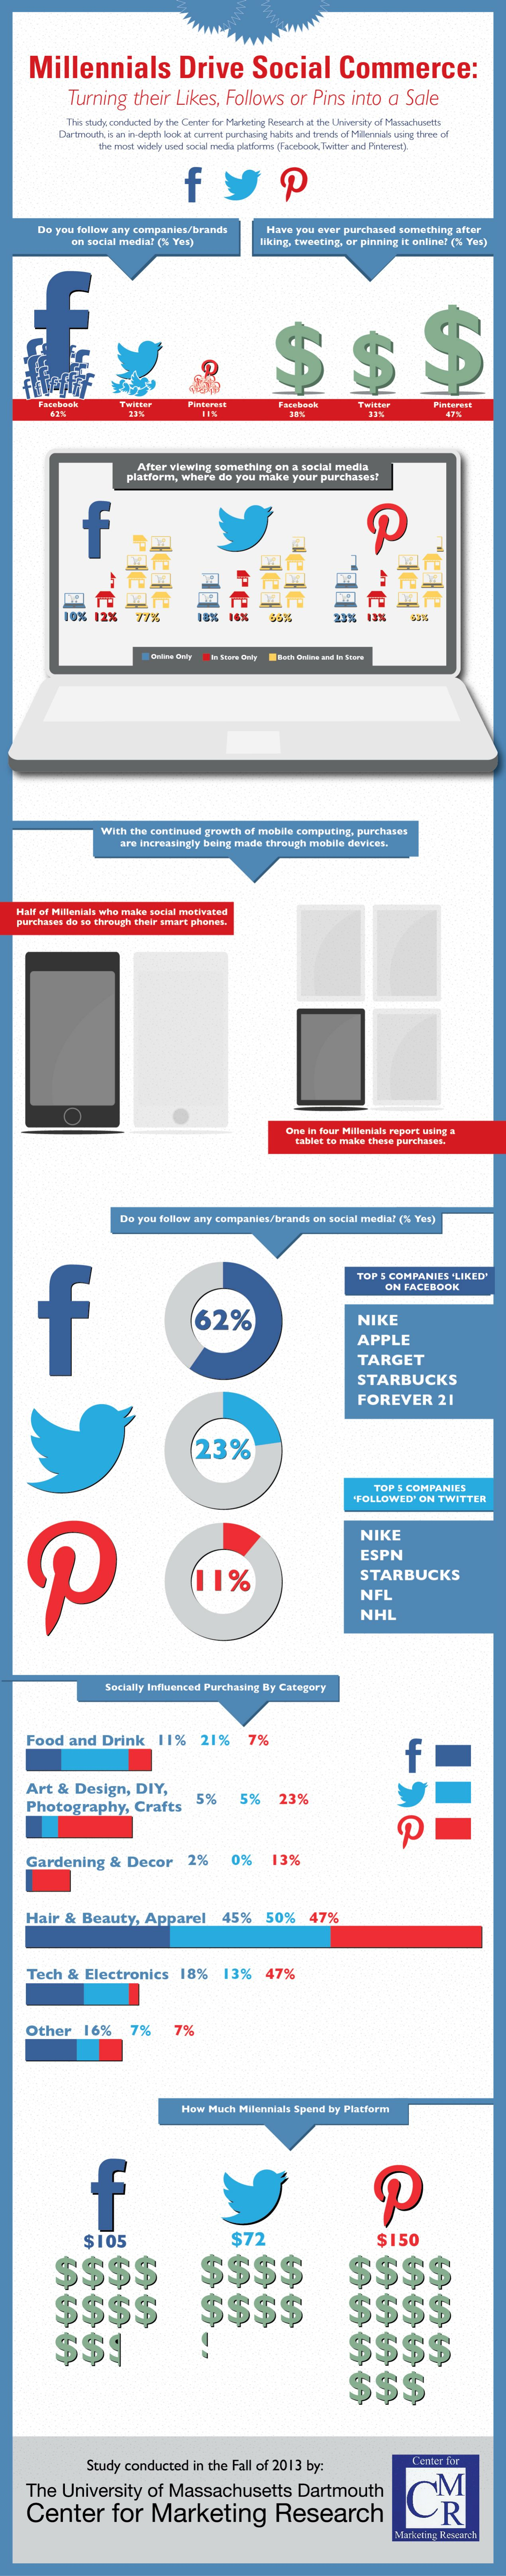 Infographic Millennials and Social Commerce